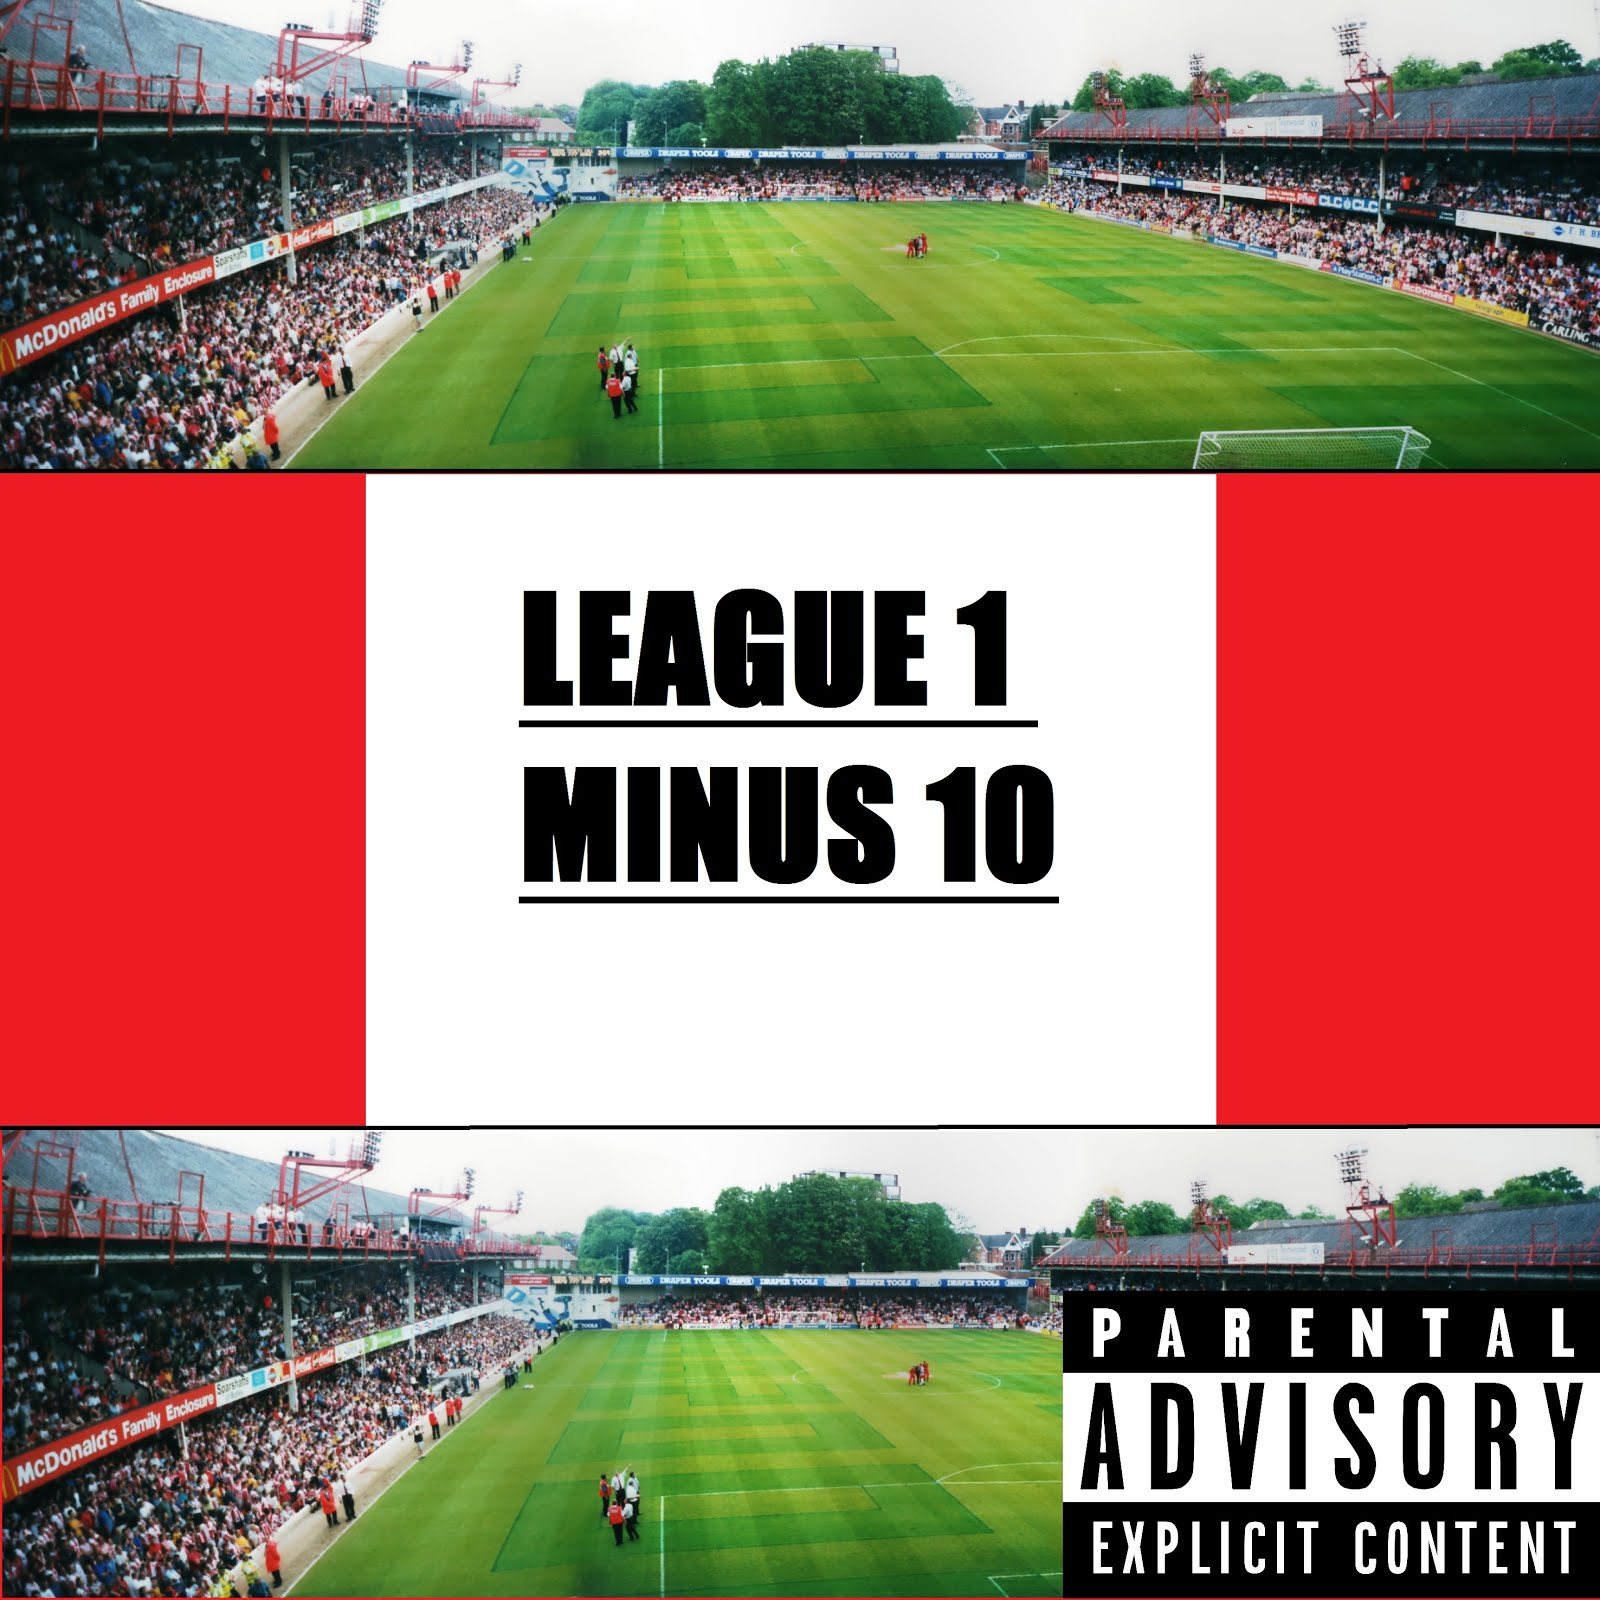 League 1 Minus 10 Podcast